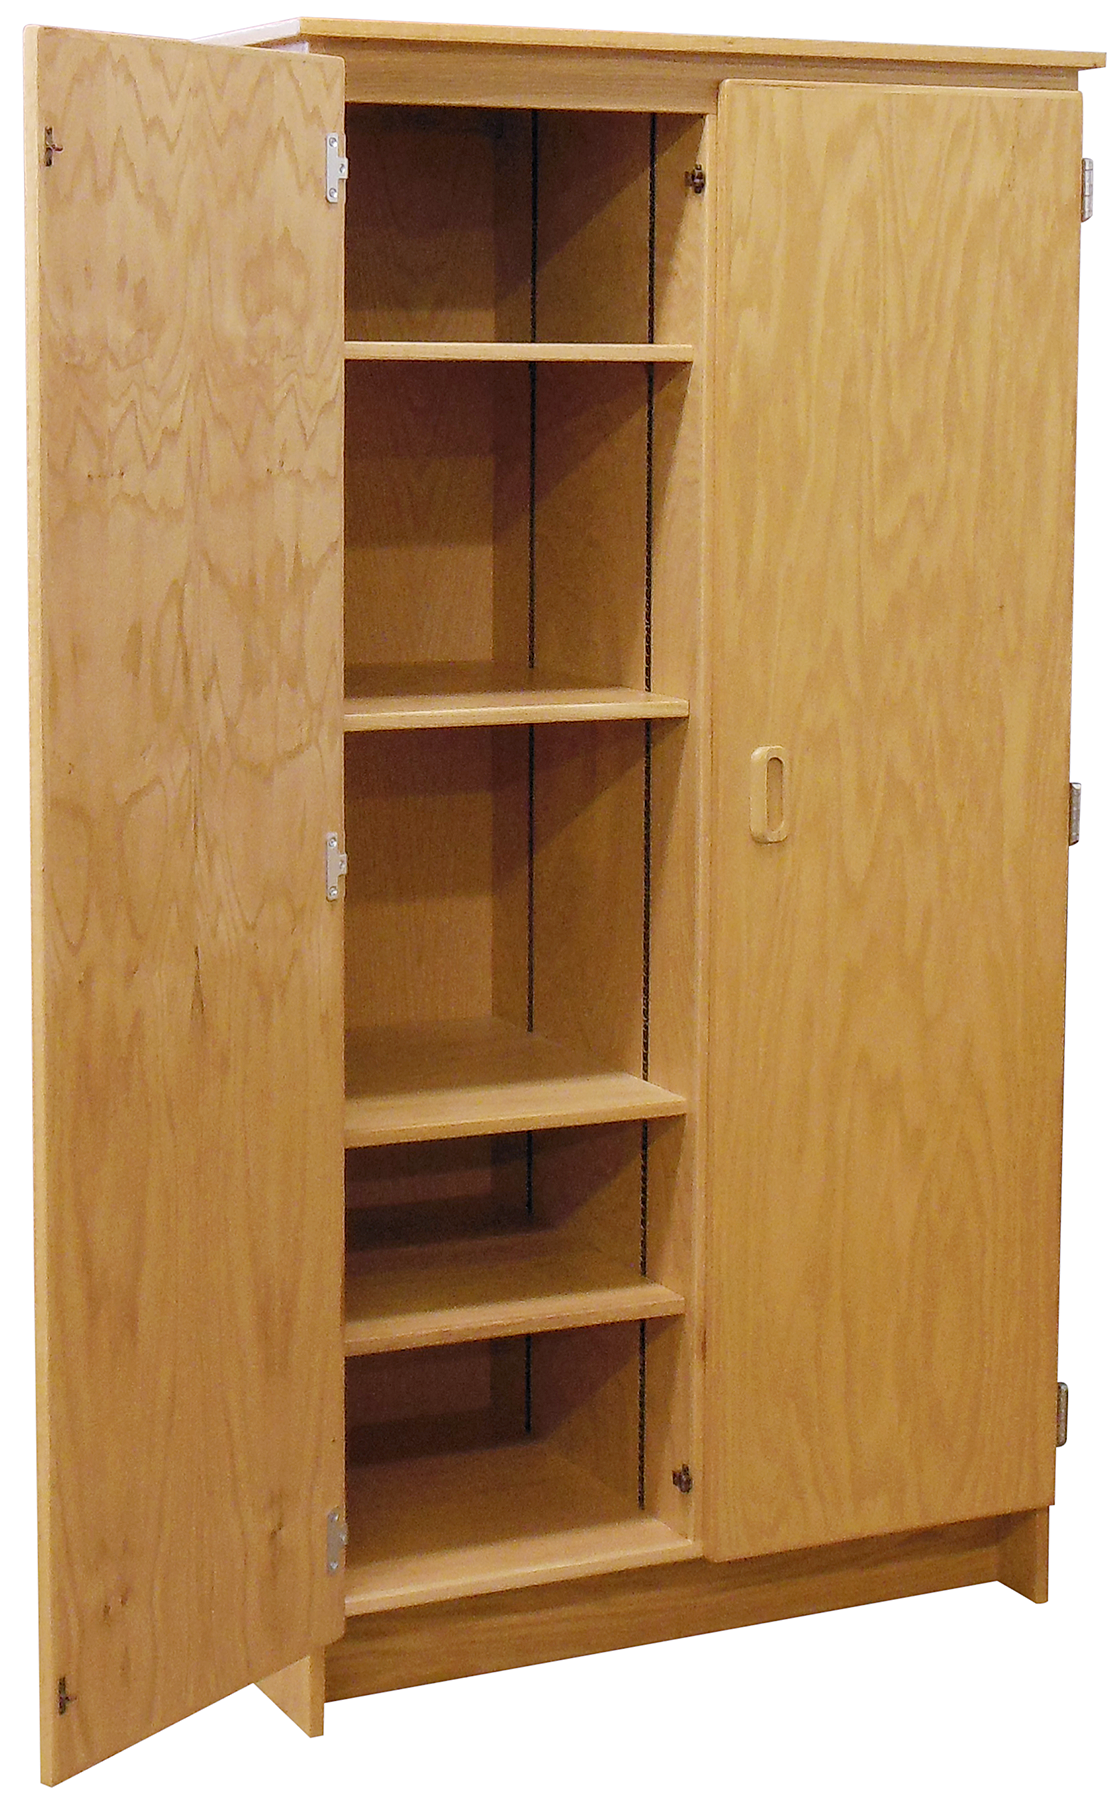 Wood Storage Cabinets Full Height Wood Storage Cabinets Small